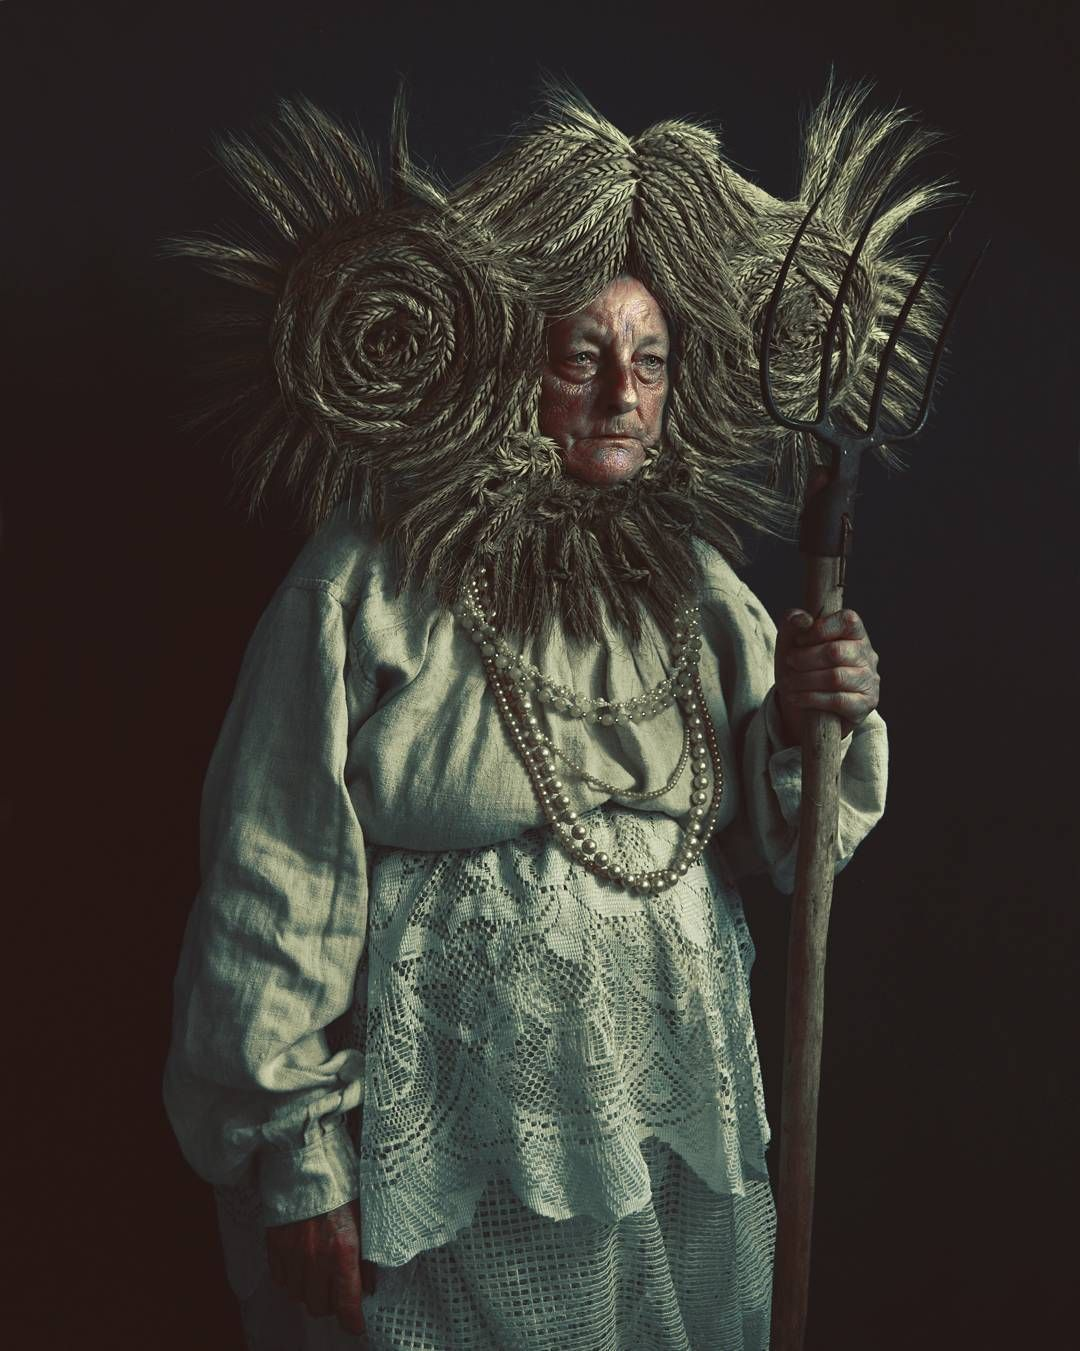 """Marcin Nagraba on Instagram: """"My fav from 'Rye Harvest' series, summer 2017. My Dear mother as a model, photo/costume by me. Available as a print more info DM. #photo…"""""""